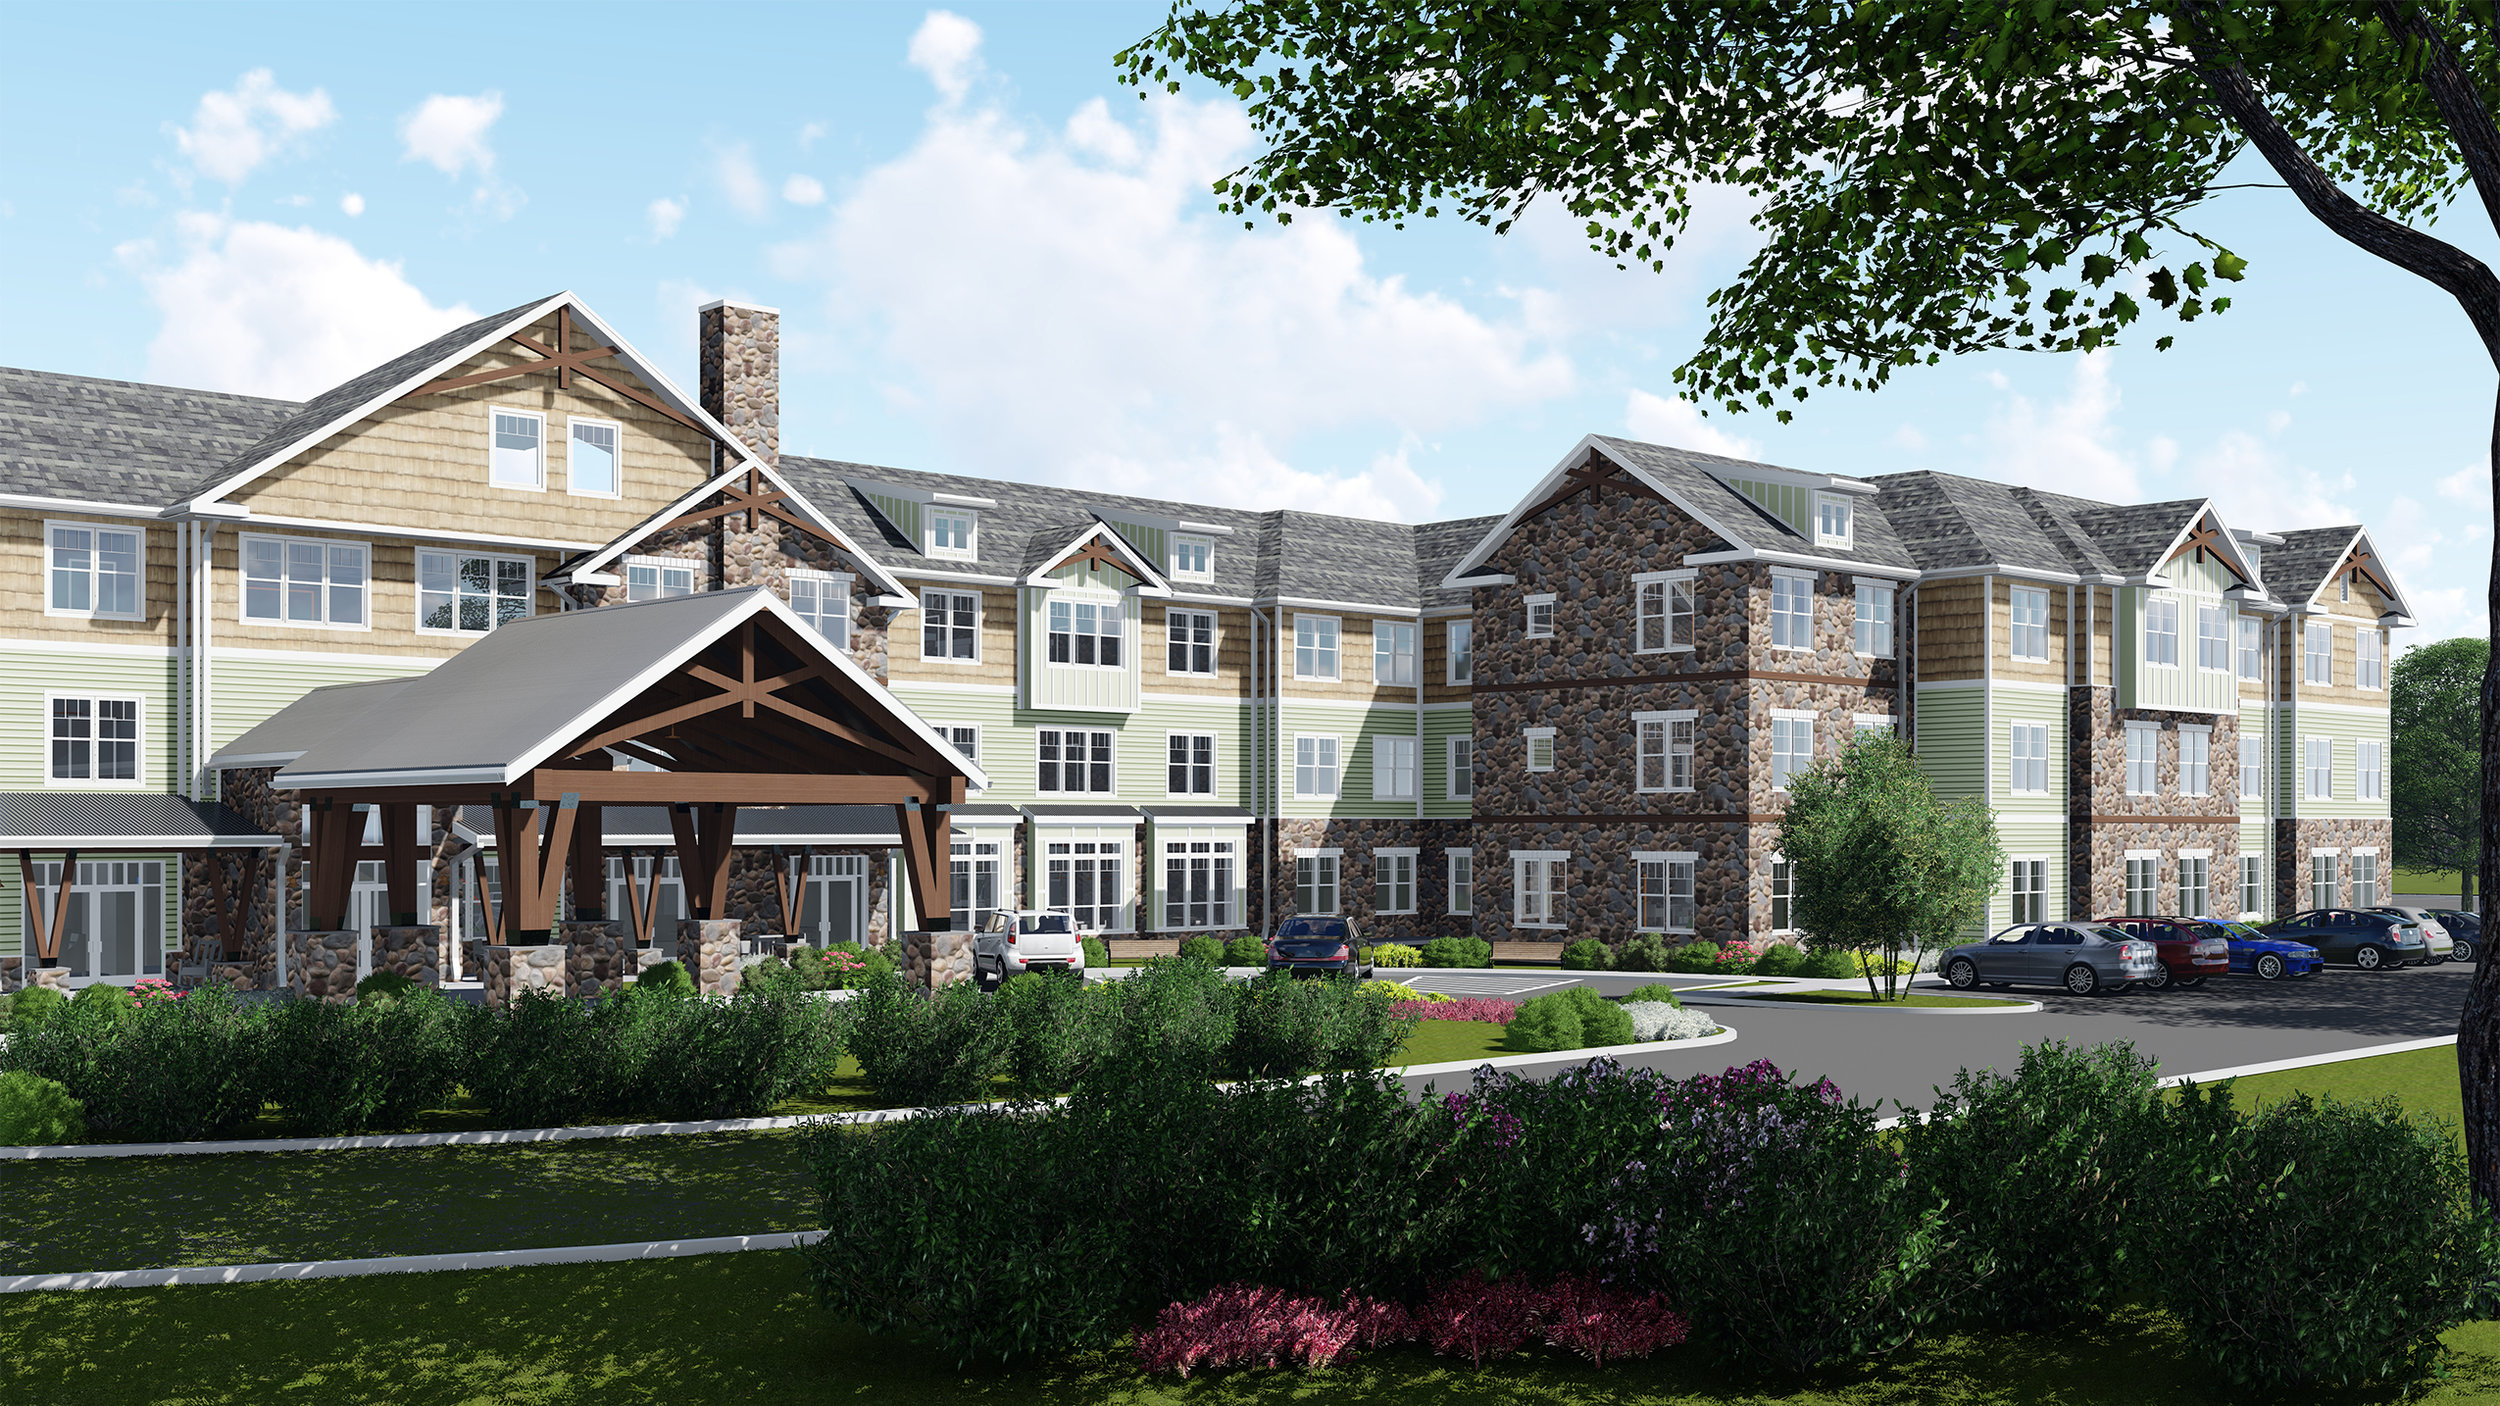 March Construction Project Stonybrook Capitol Seniors Housing Greenburgh, NY, Rendering